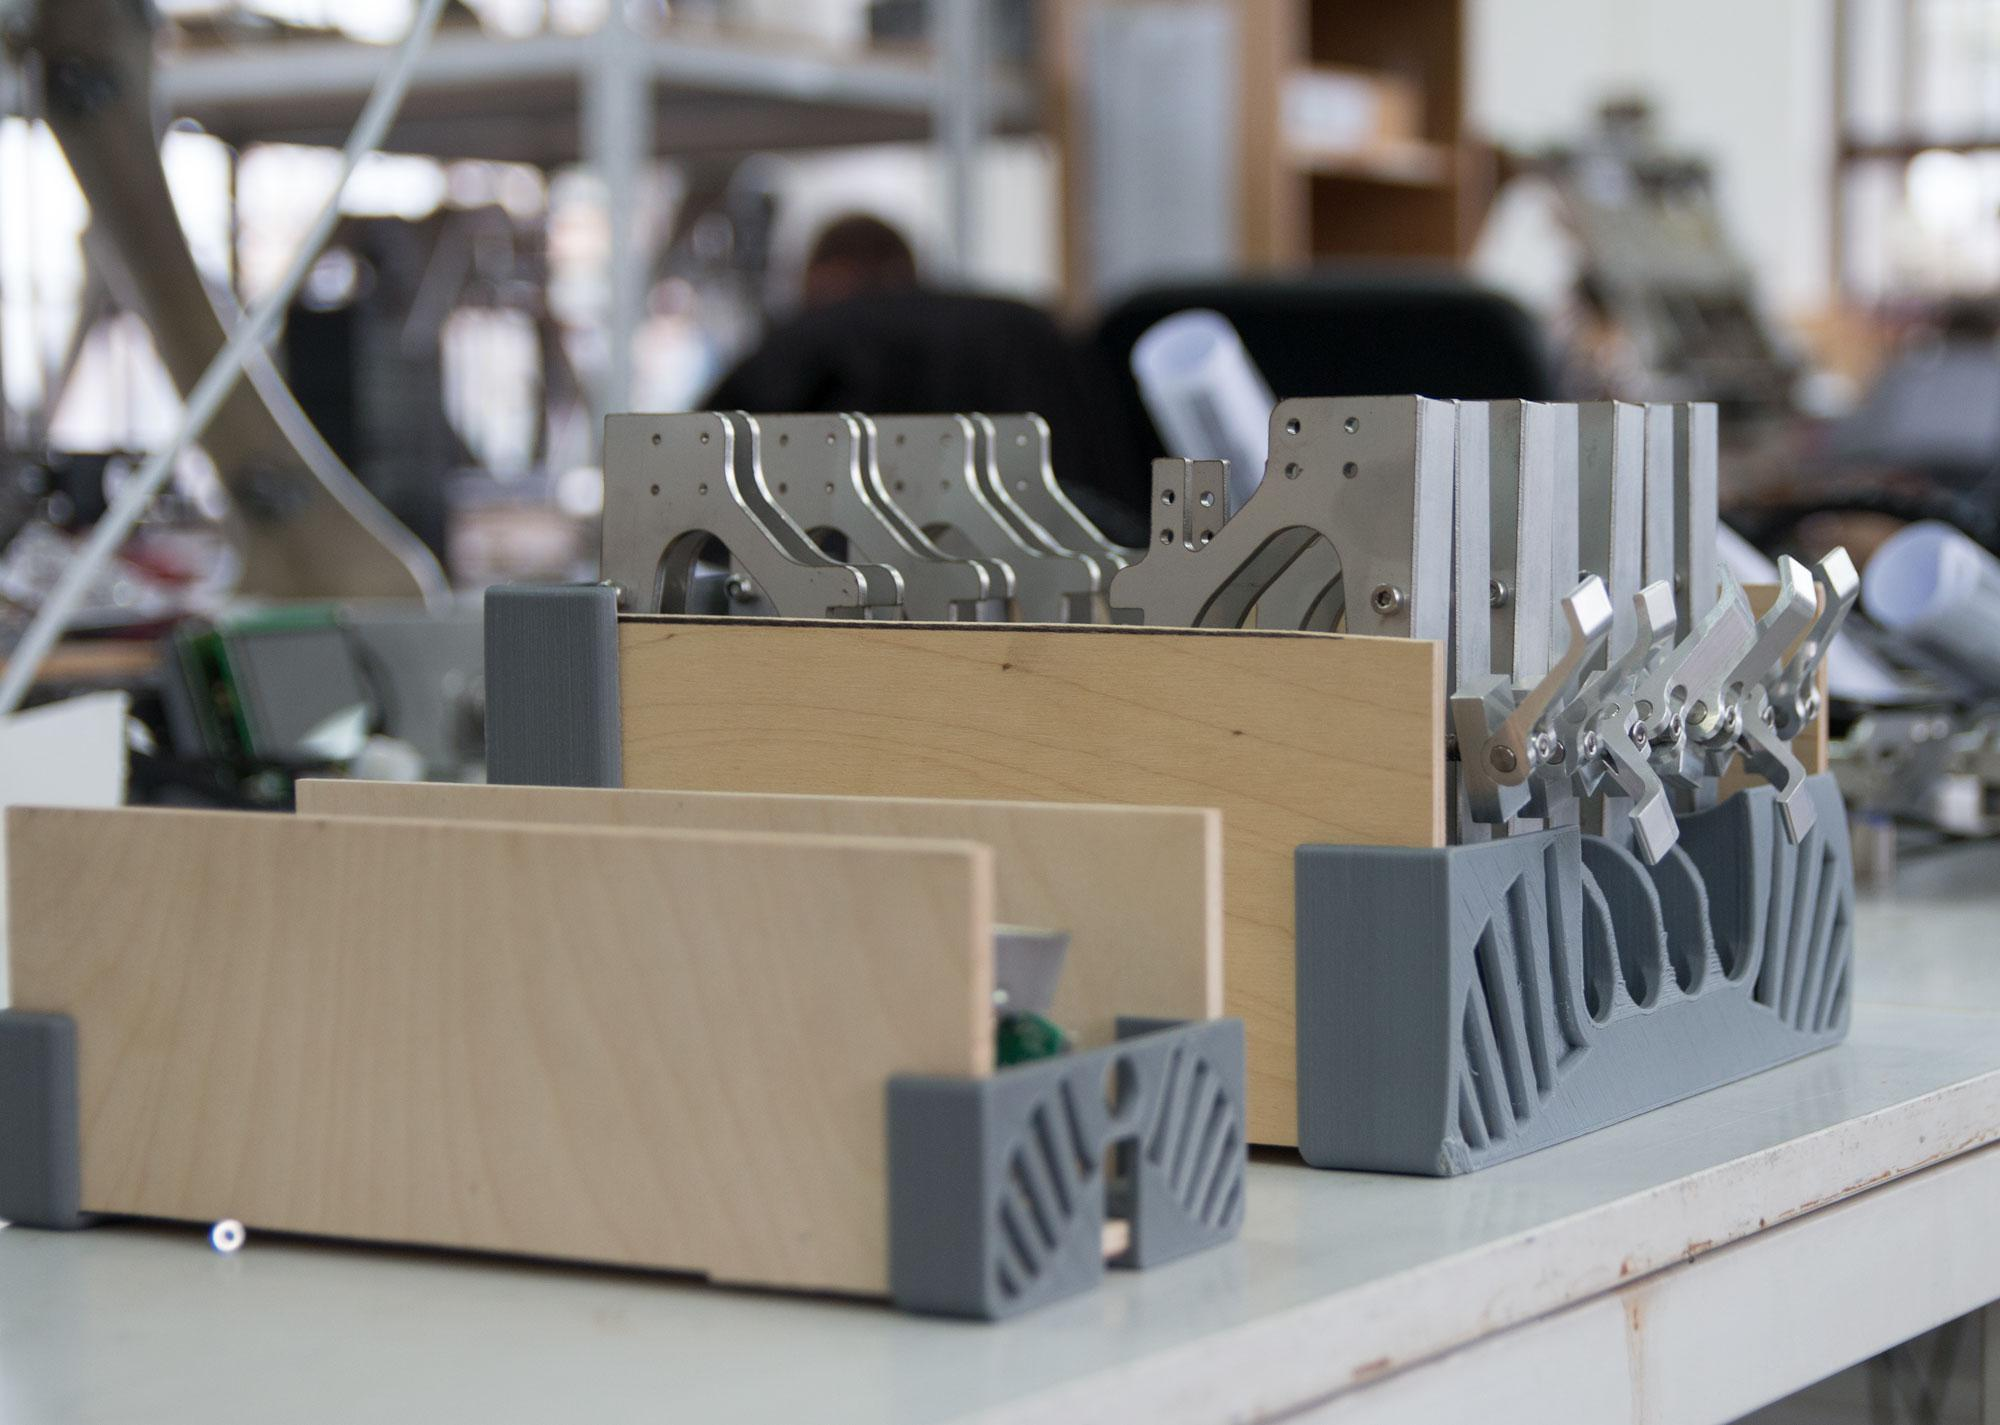 CNC table holders